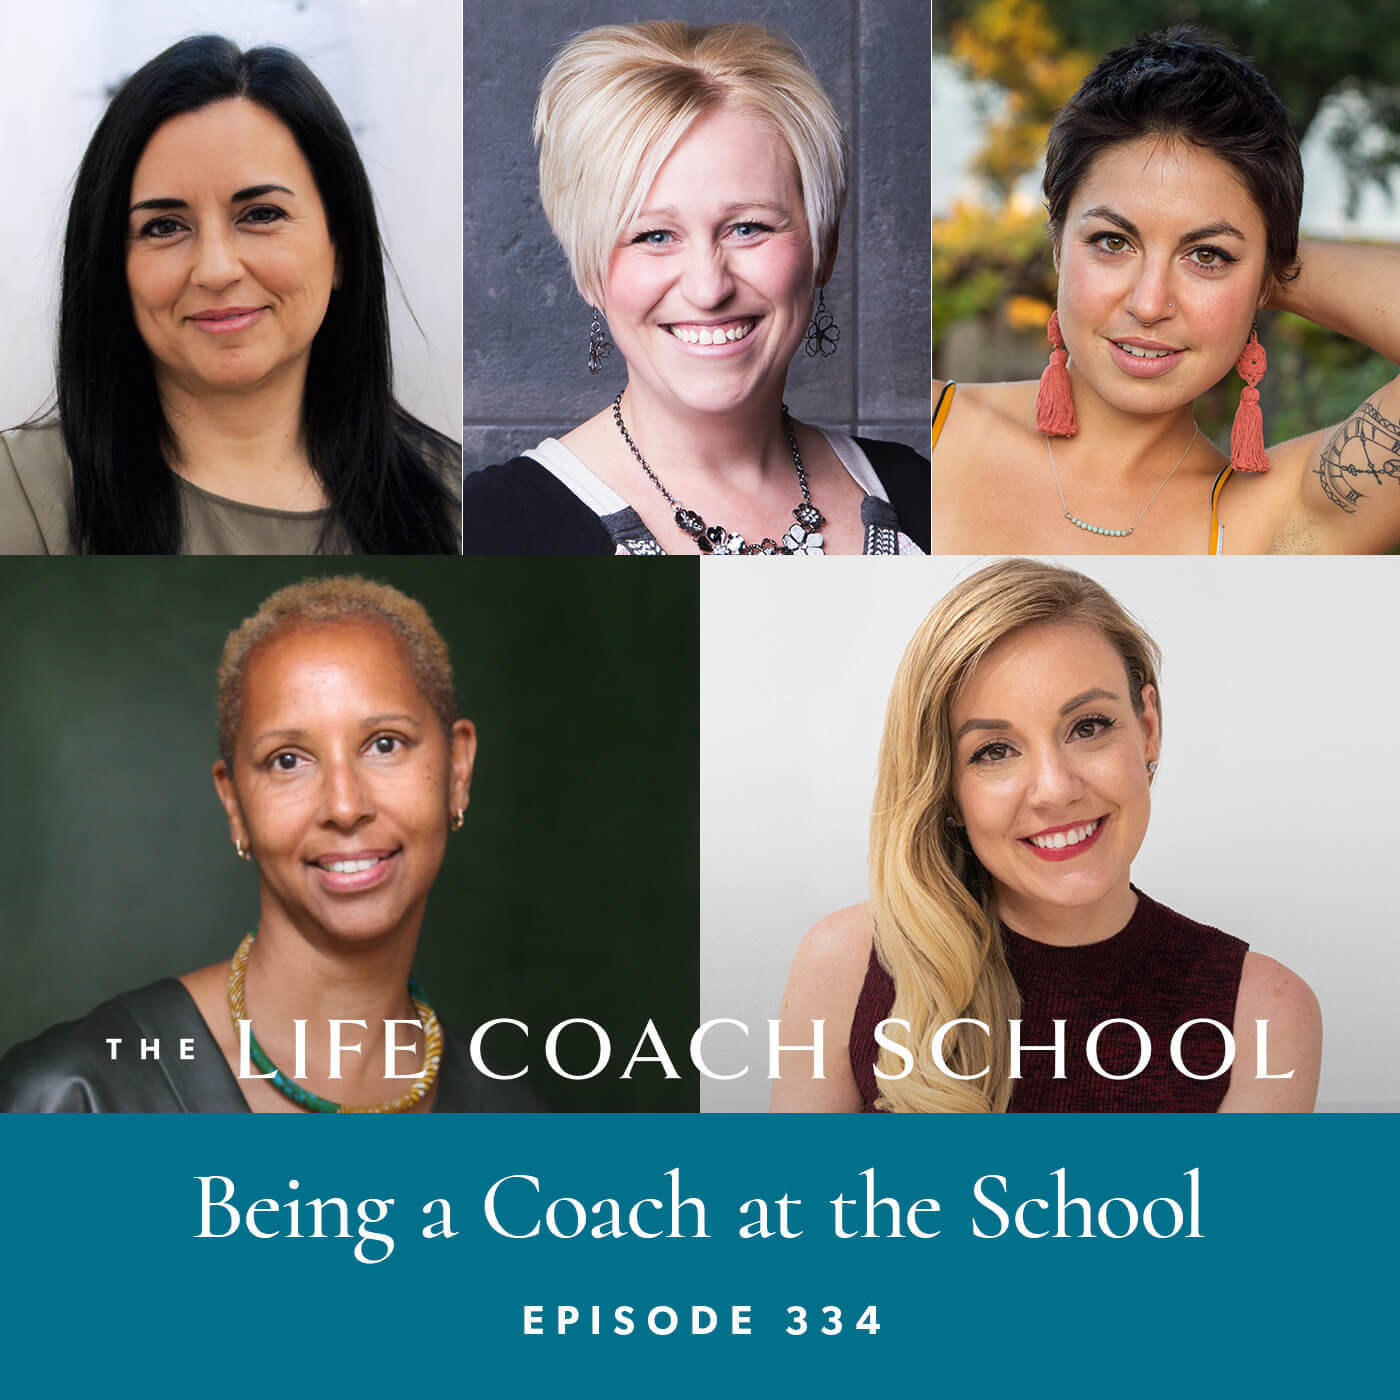 Ep #334: Being a Coach at the School